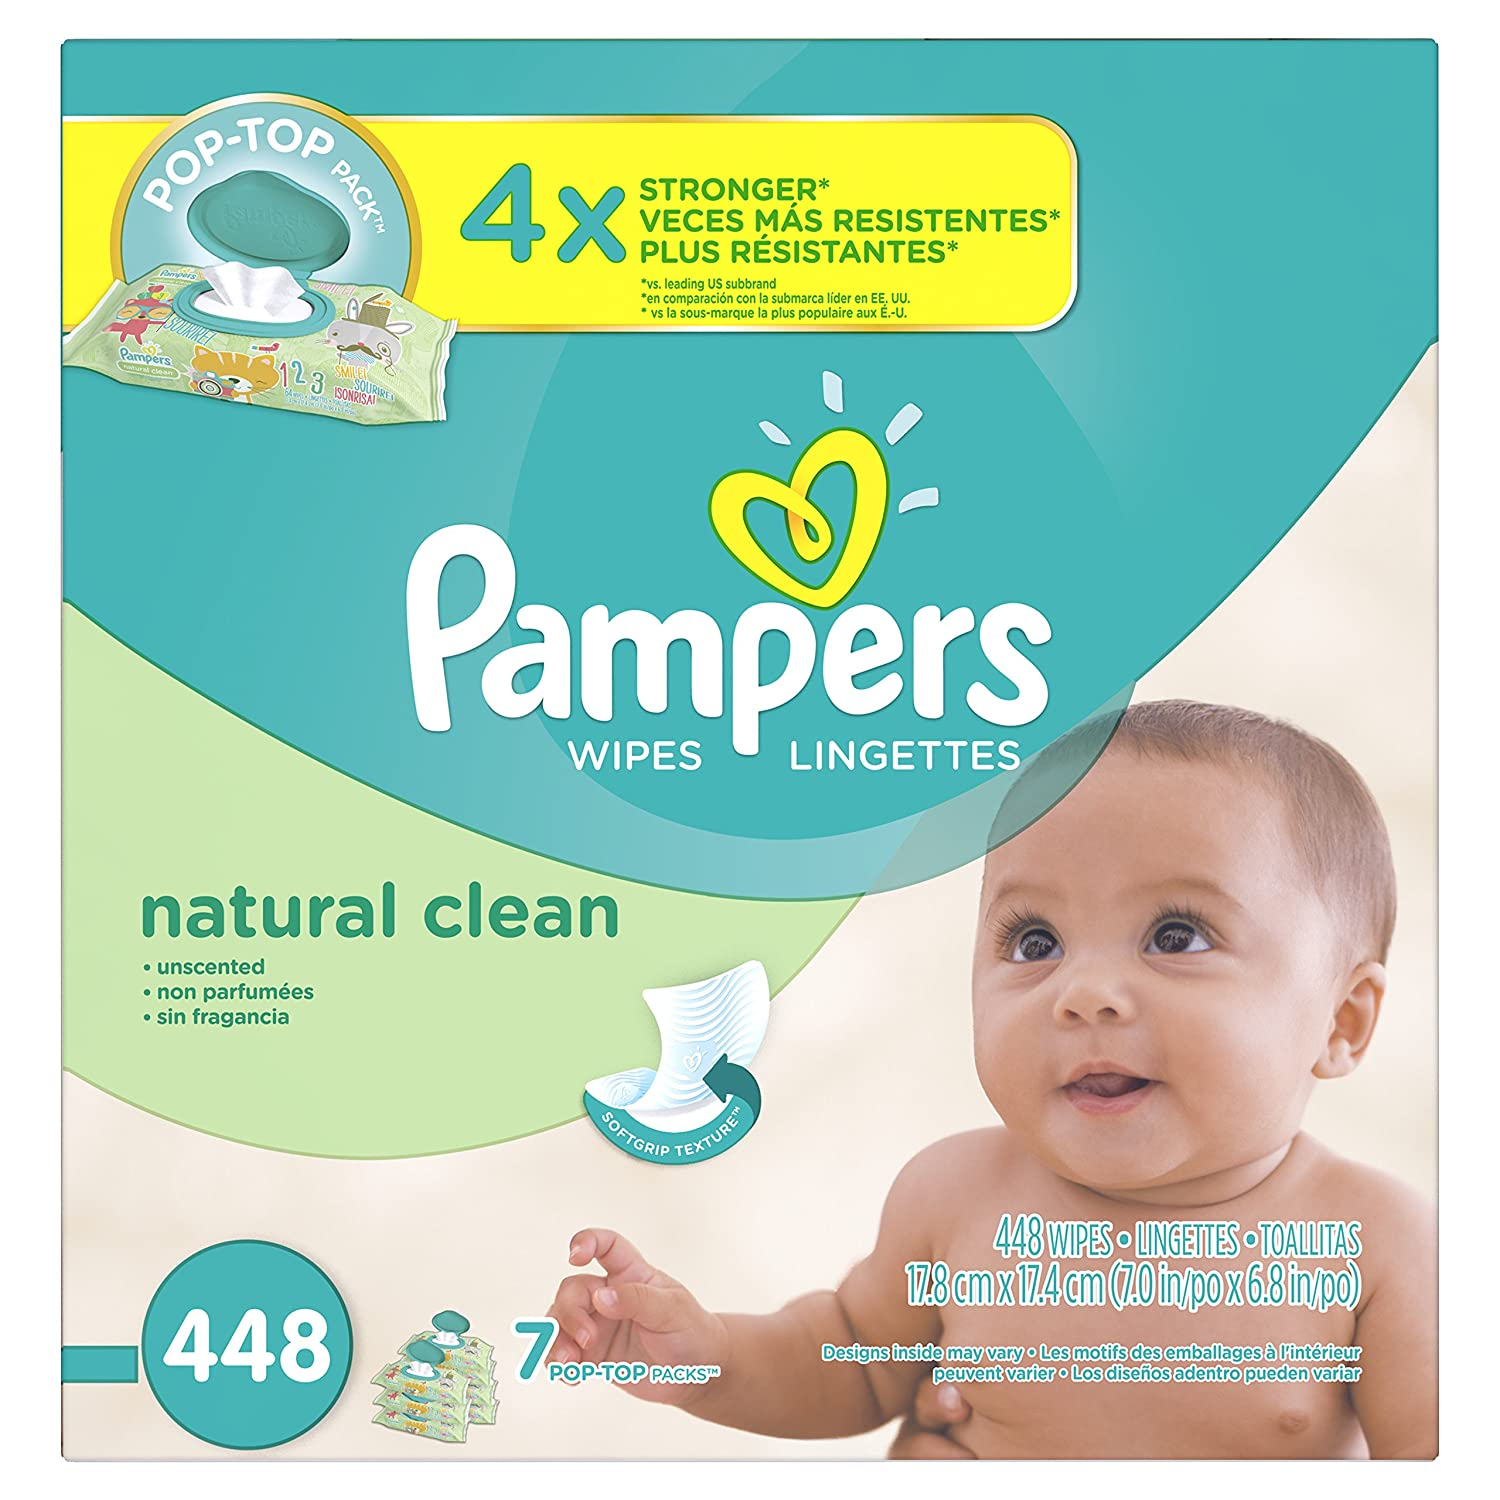 Pampers Baby Wipes Natural Clean (Unscented) 7X Pop-Top, 448 Diaper Wipes 37000894001